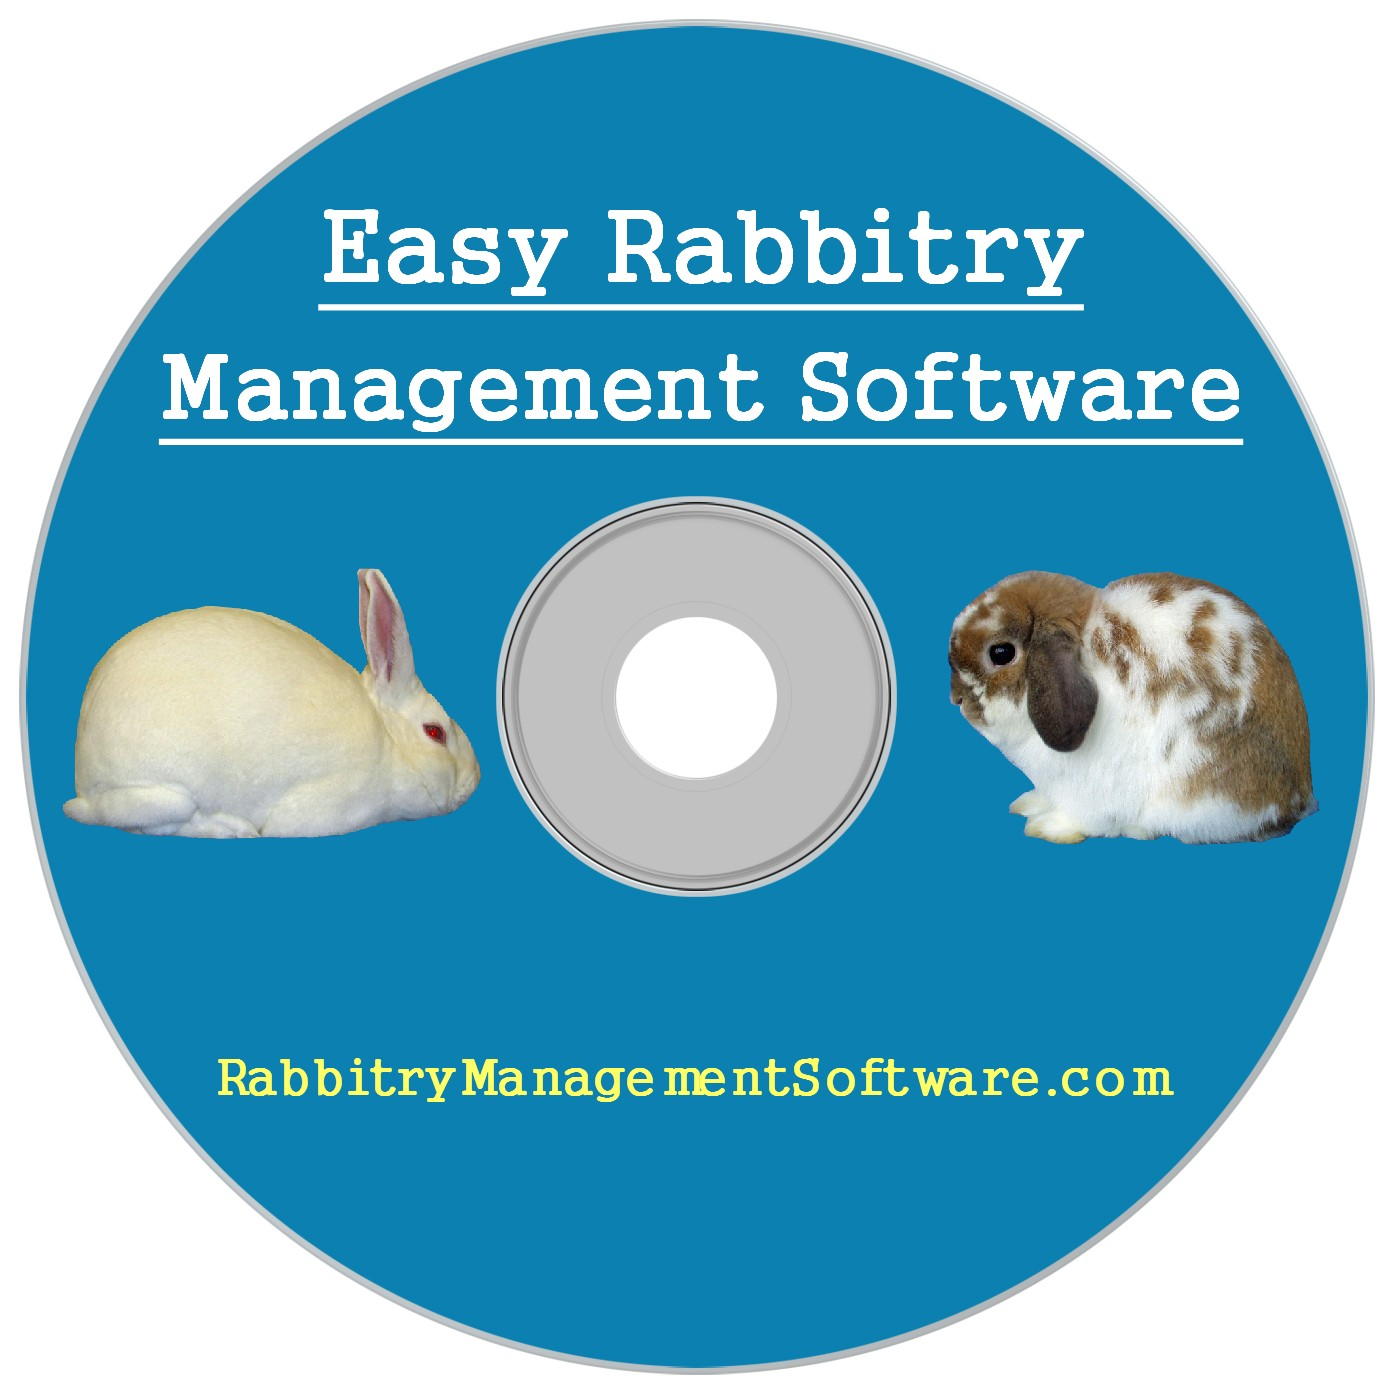 Rabbitry Management Software